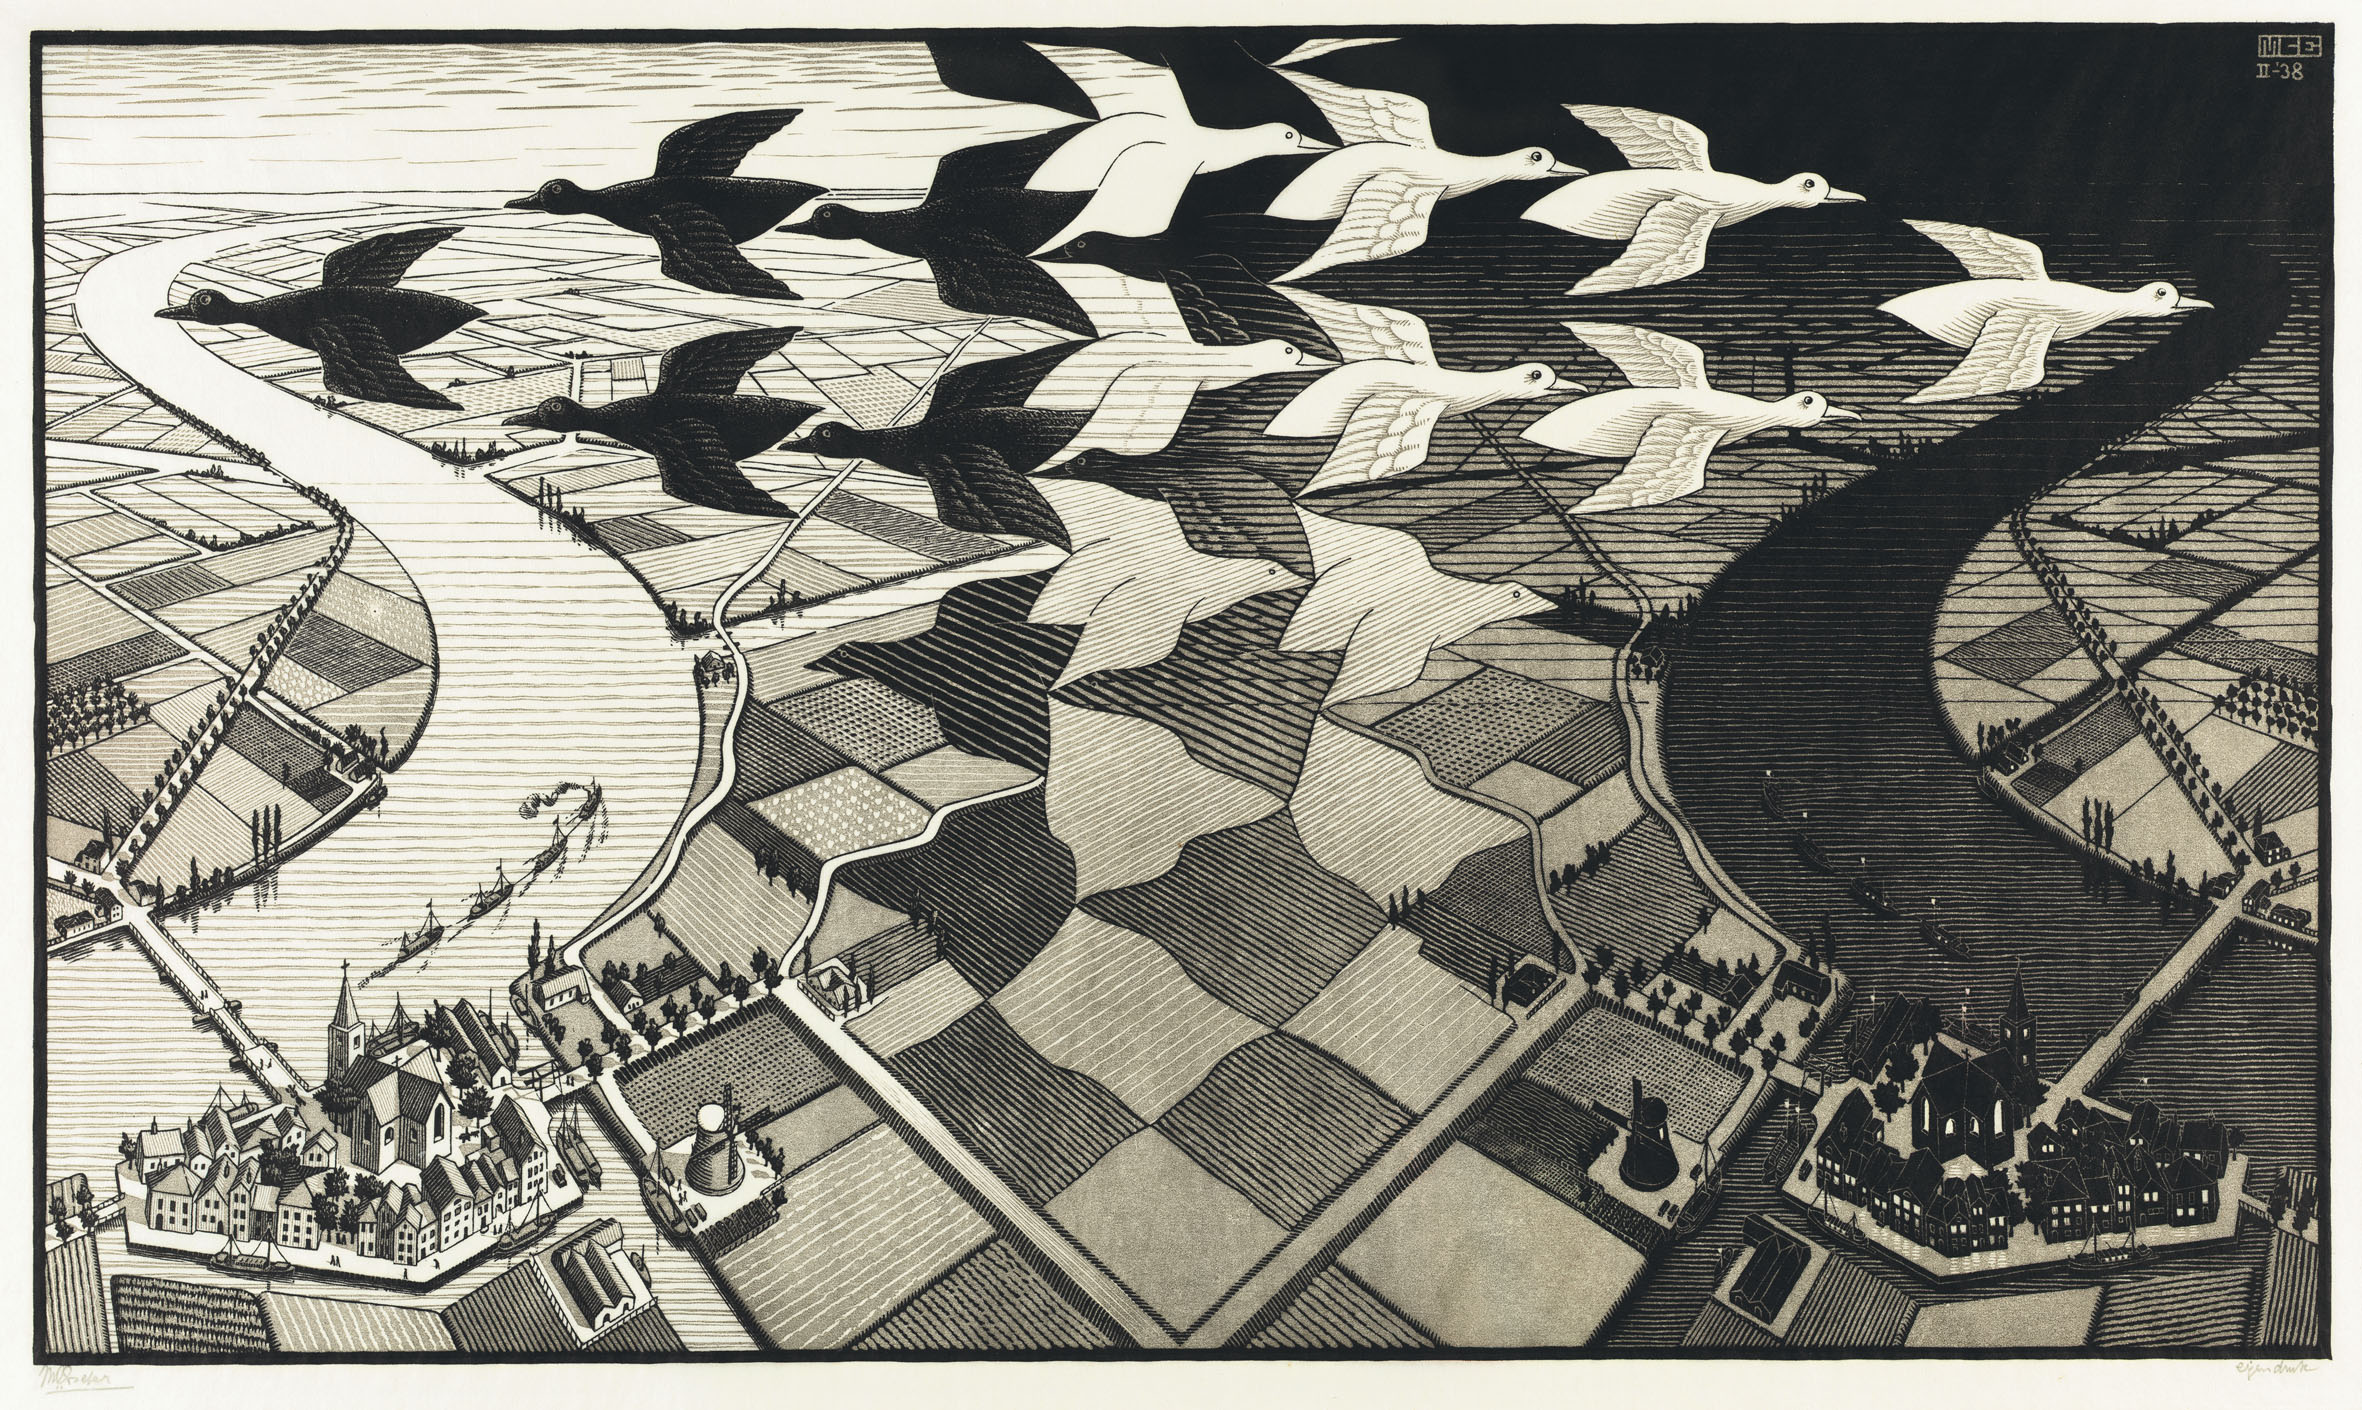 Drawn m.c.escher elephant Night and Day Artefact Review